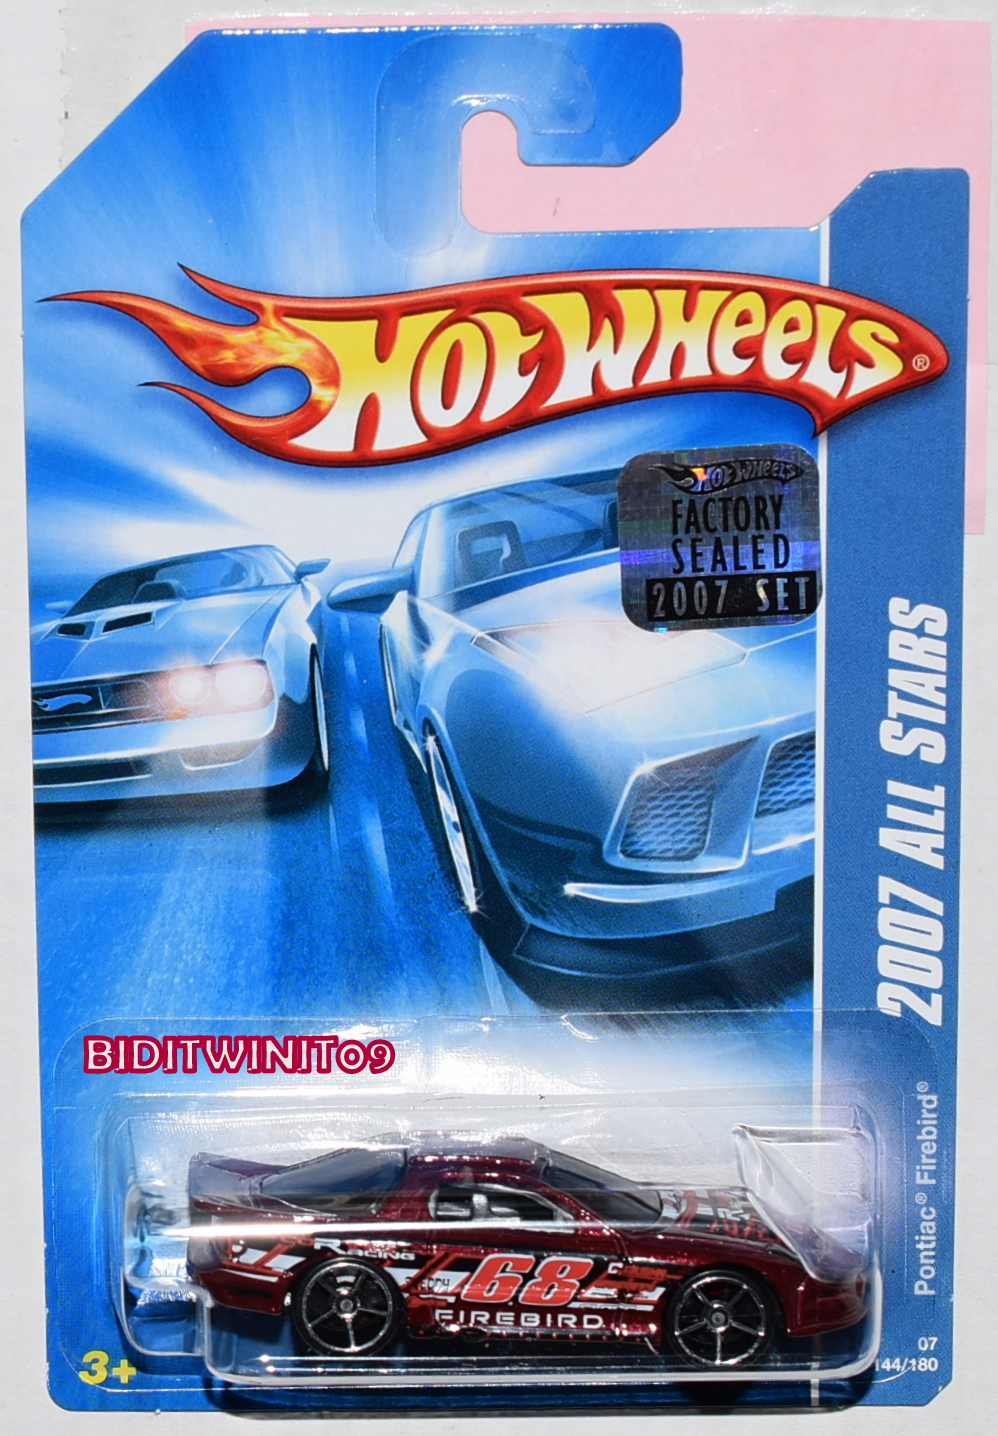 HOT WHEELS 2007 ALL STARS PONTIAC FIREBIRD #144/180 RED FACTORY SEALED